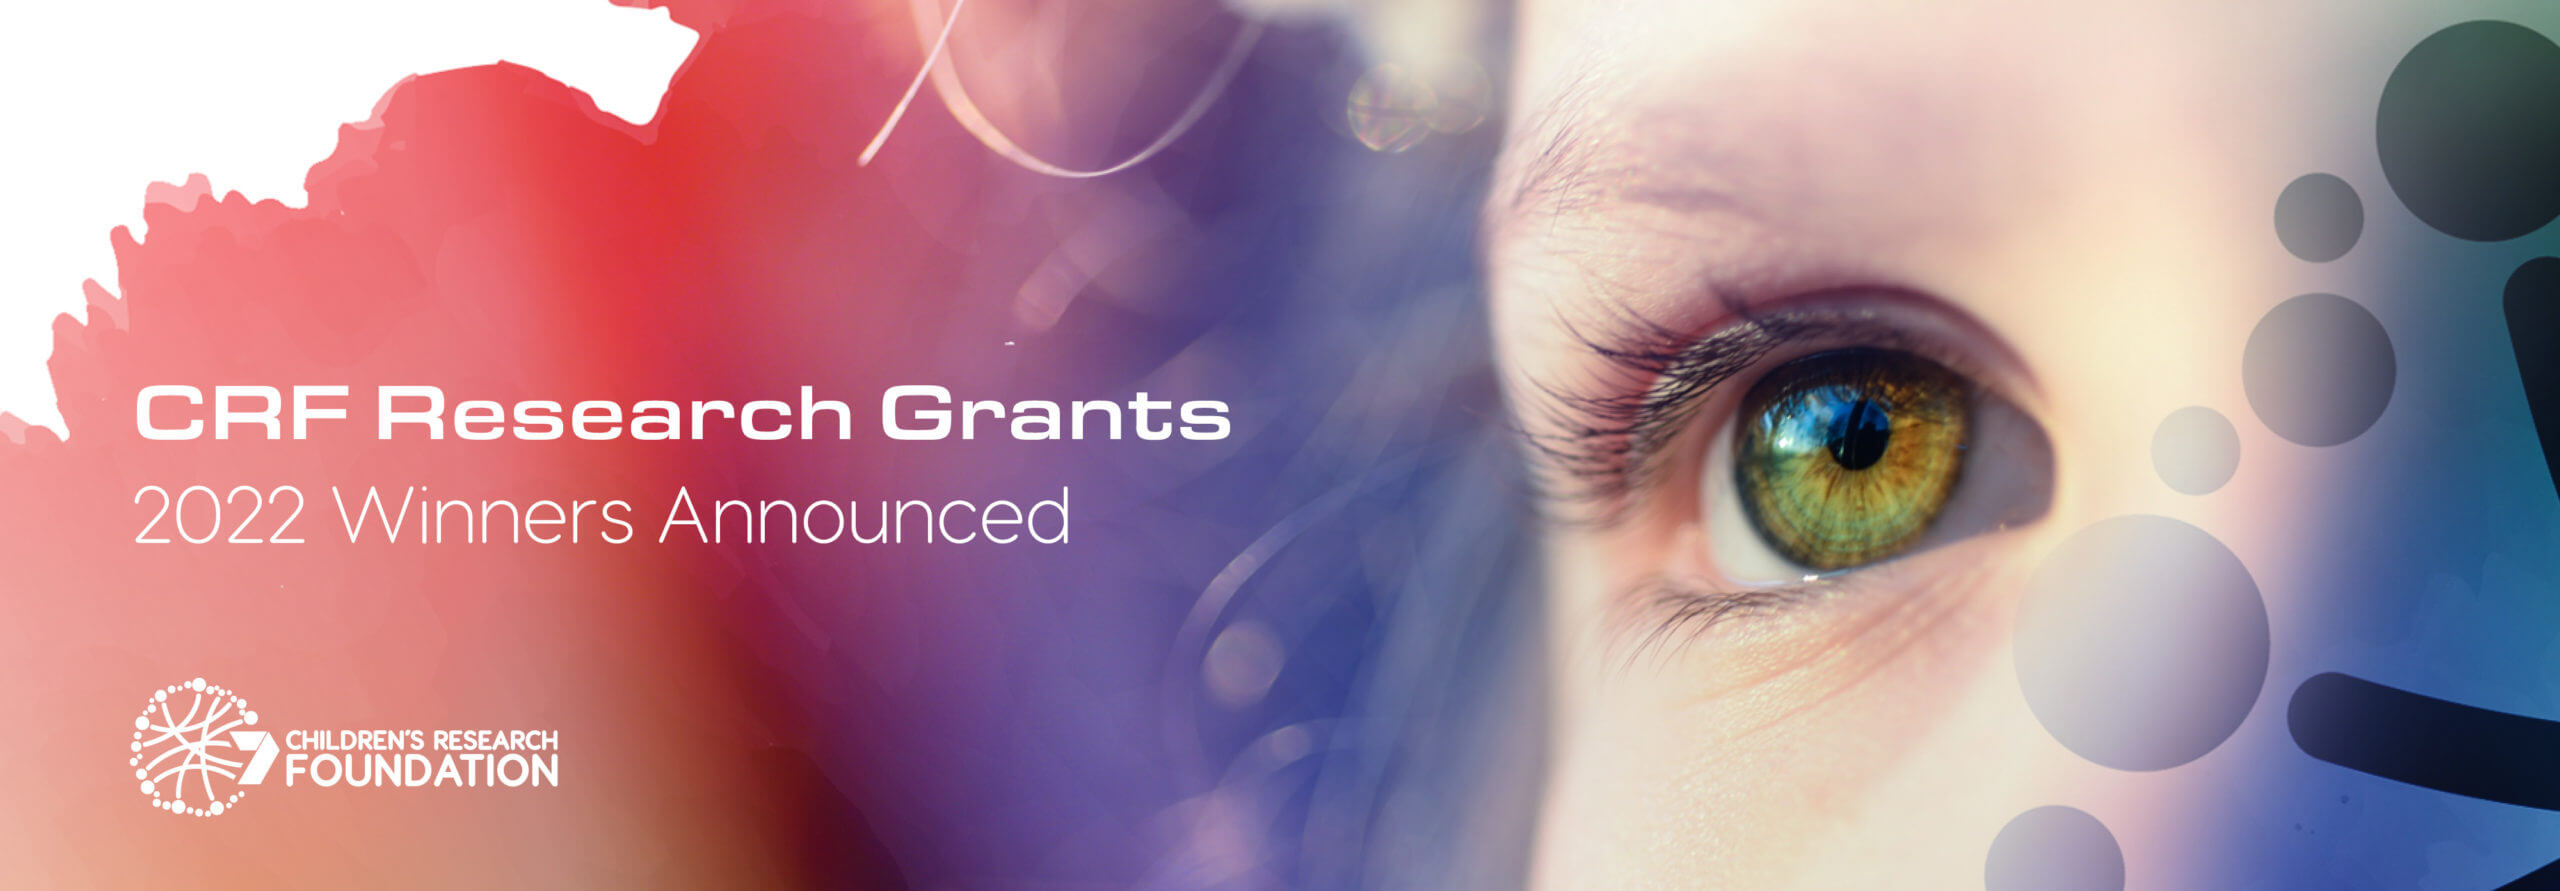 CRF RESEARCH GRANTS – 2022 WINNERS ANNOUNCED